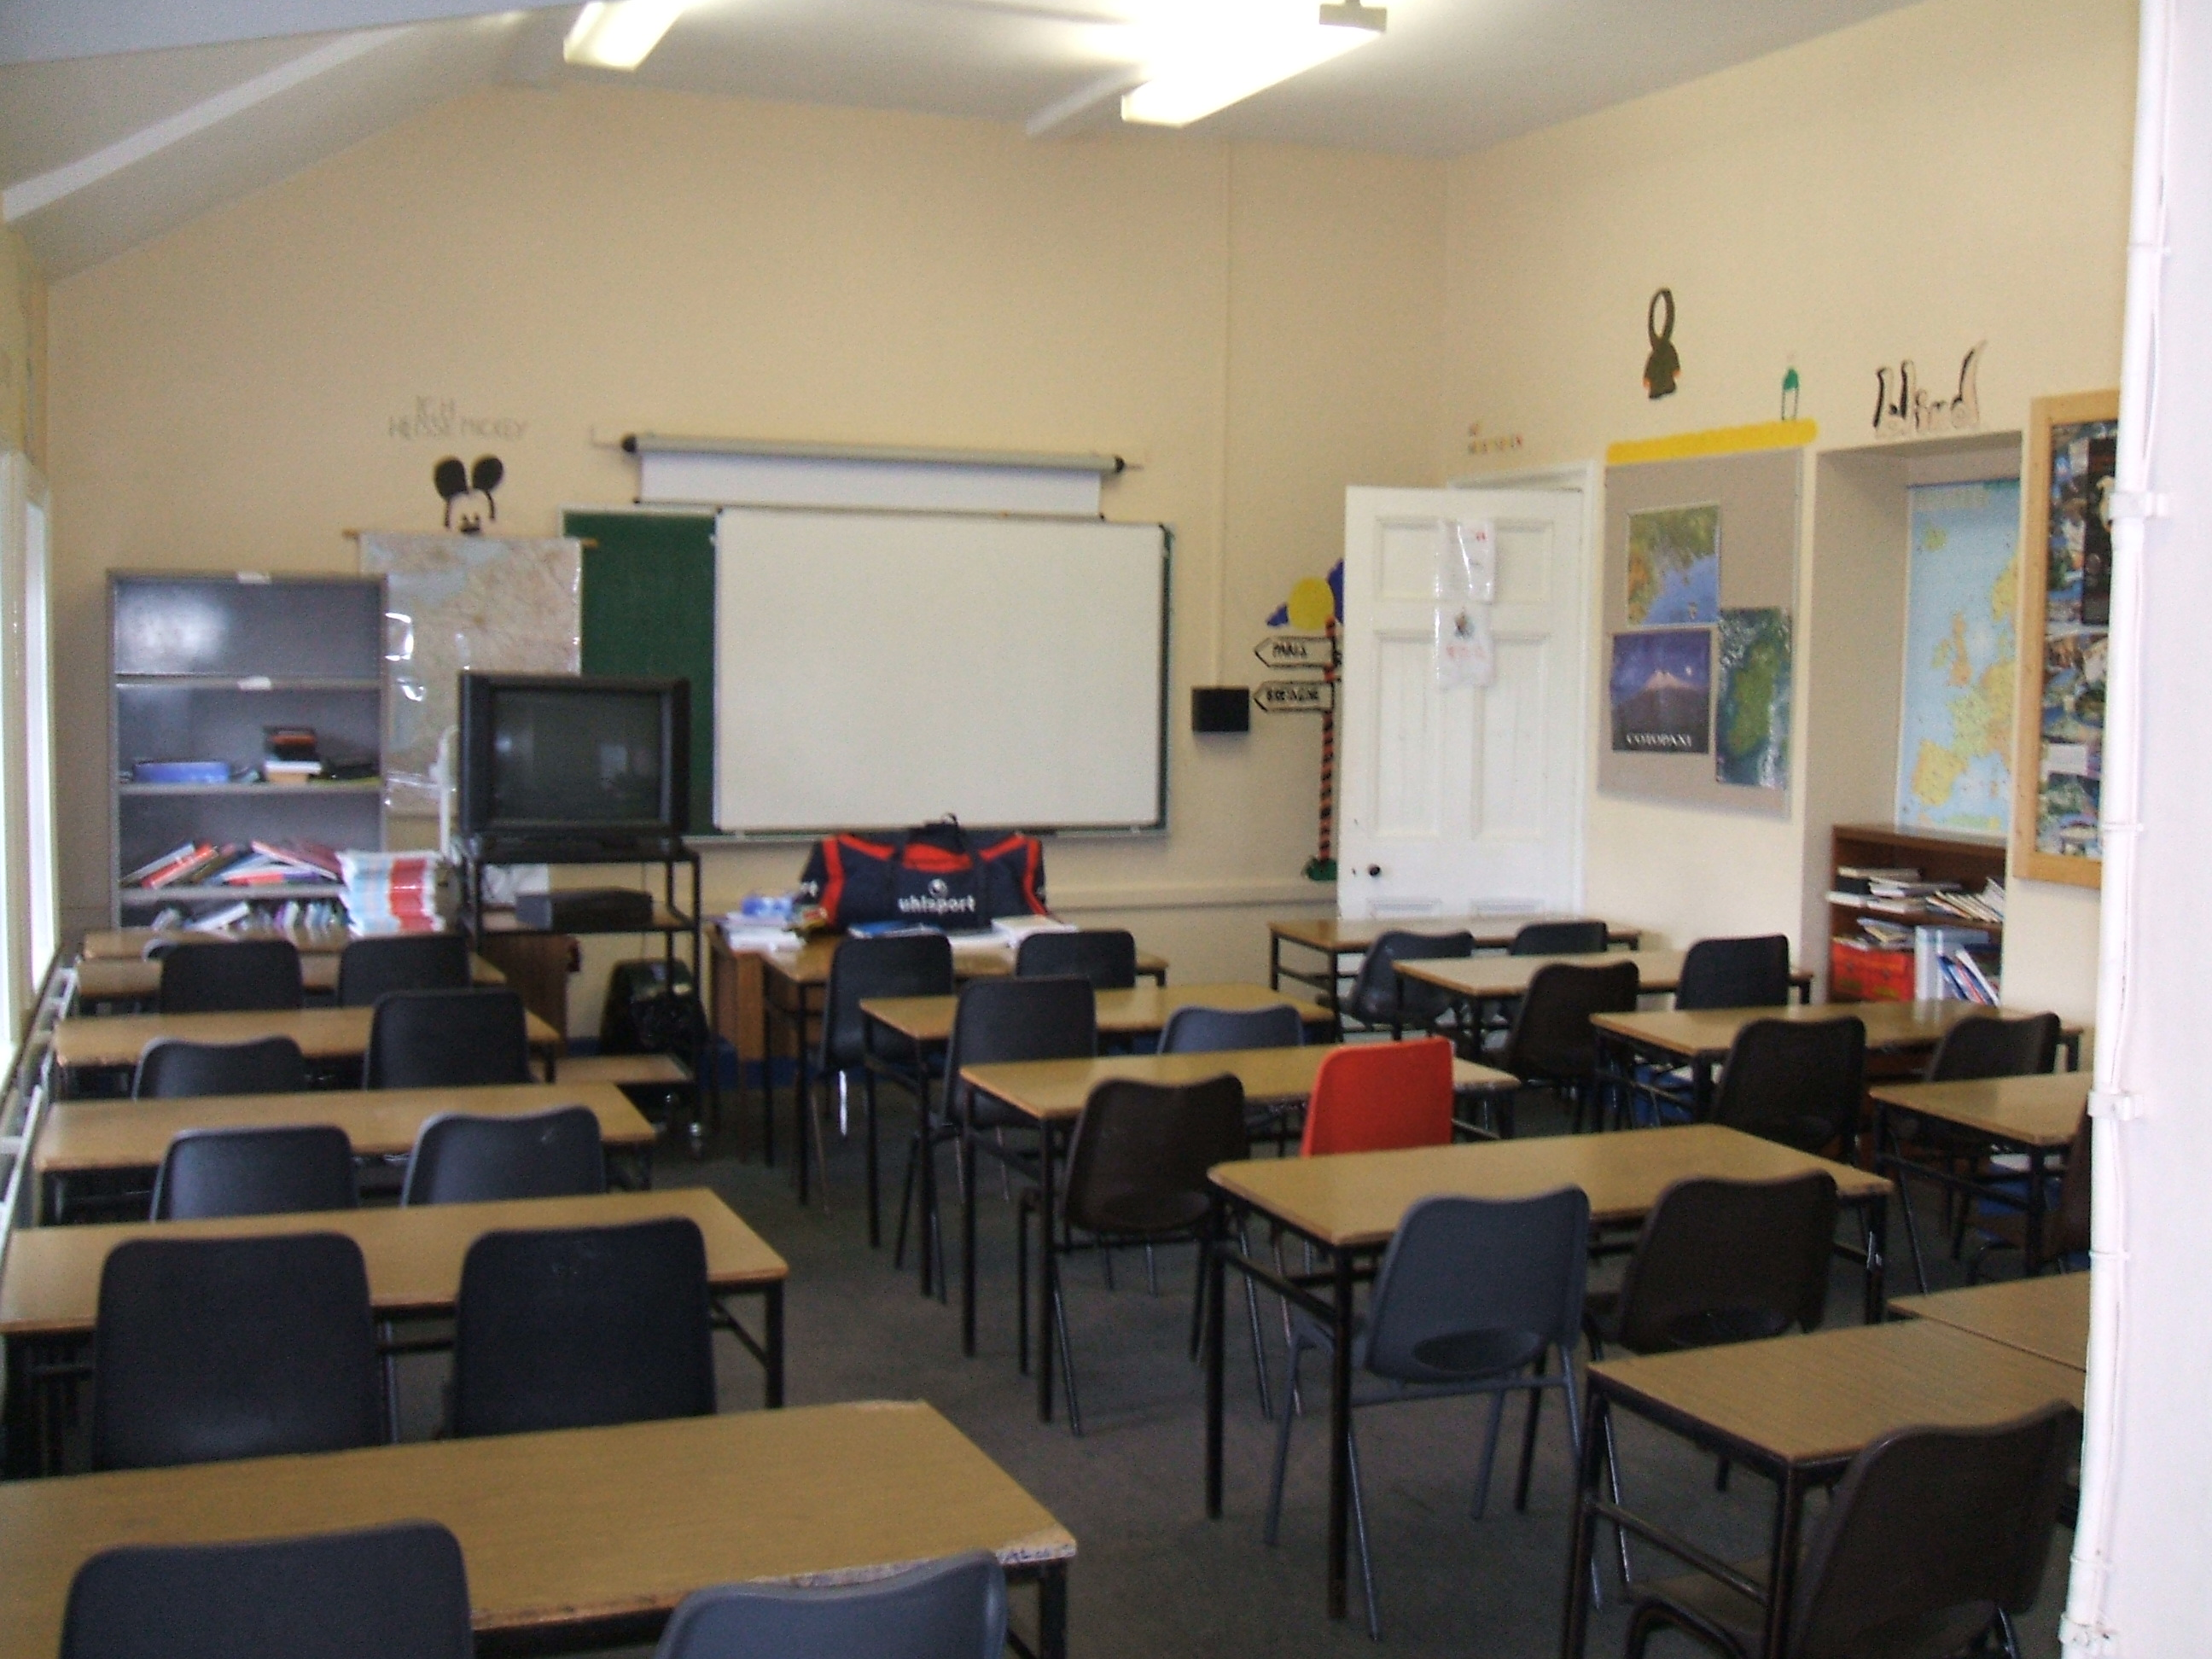 School classroom without students